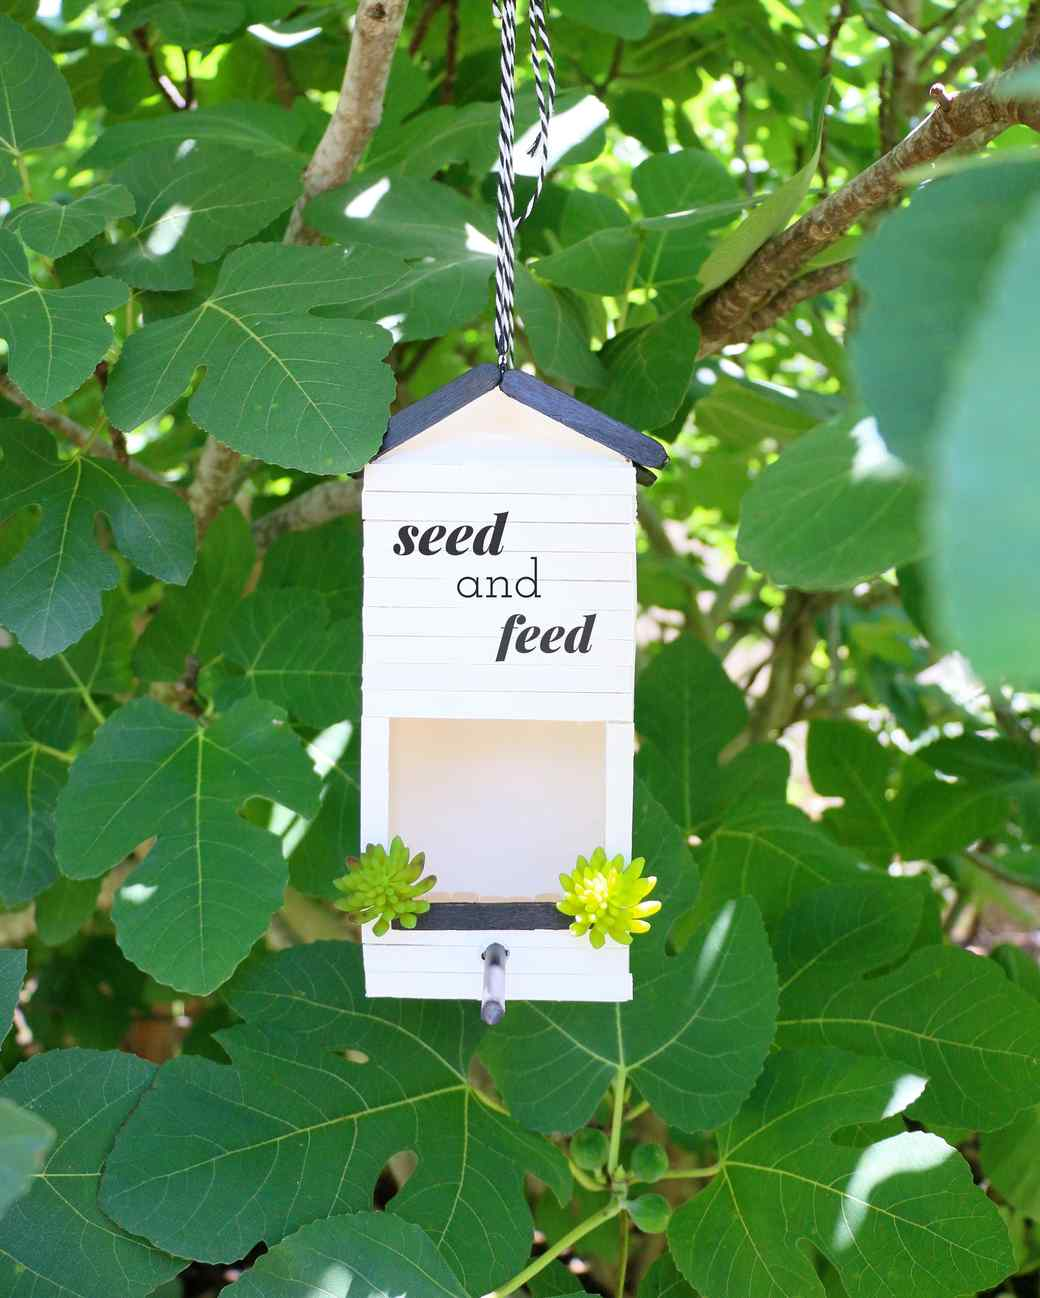 carton bird feeder surrounded by leaves